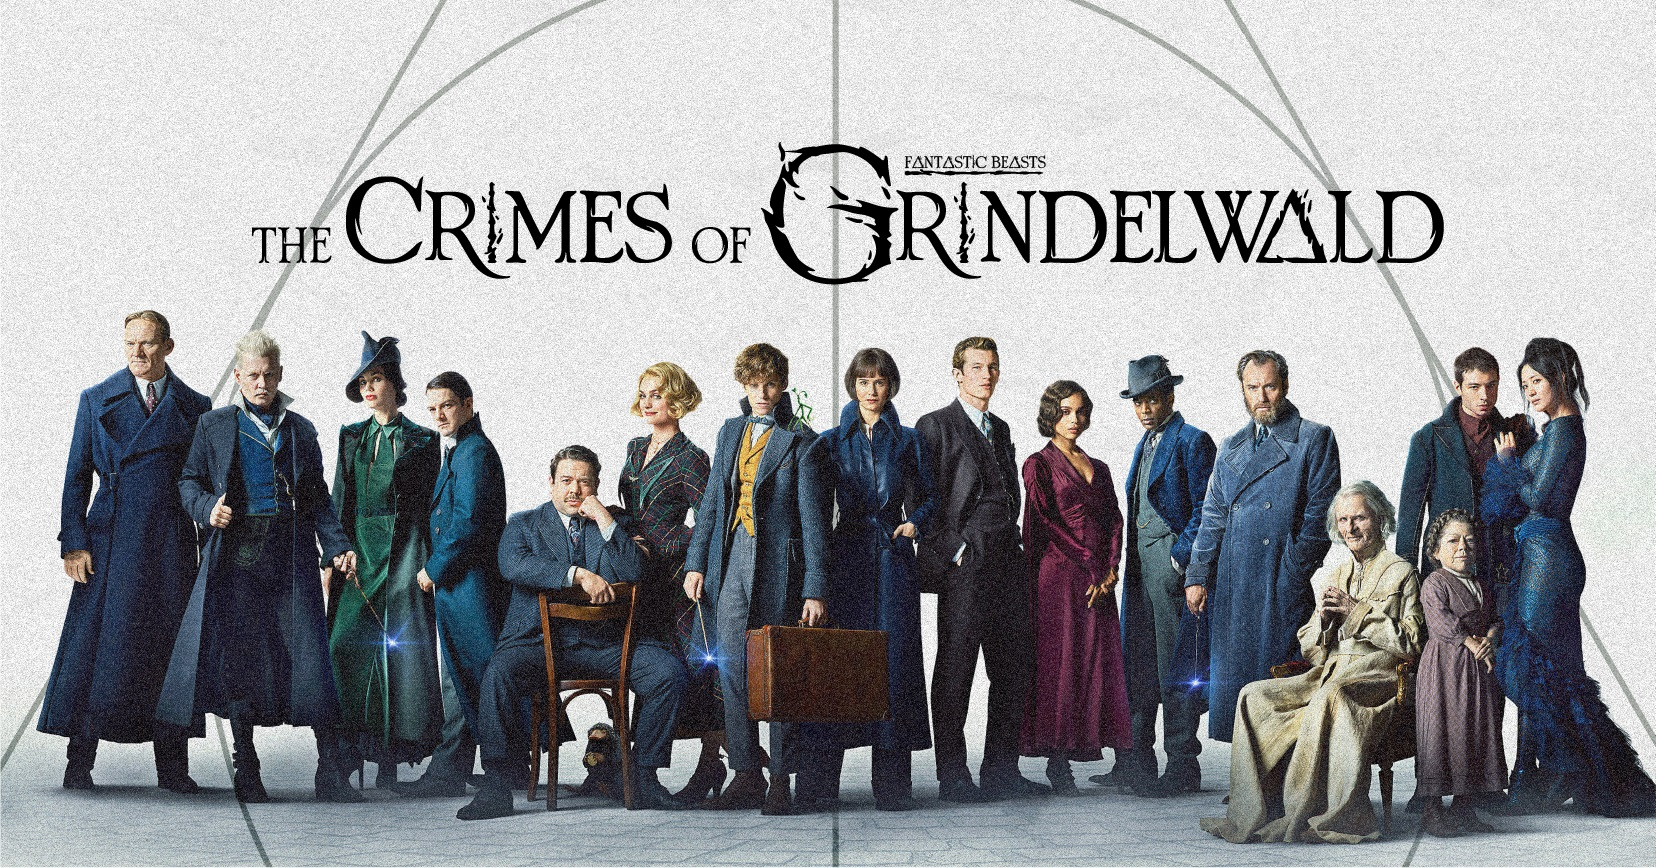 نقد فیلم Fantastic Beasts the Crimes of Grindelwald